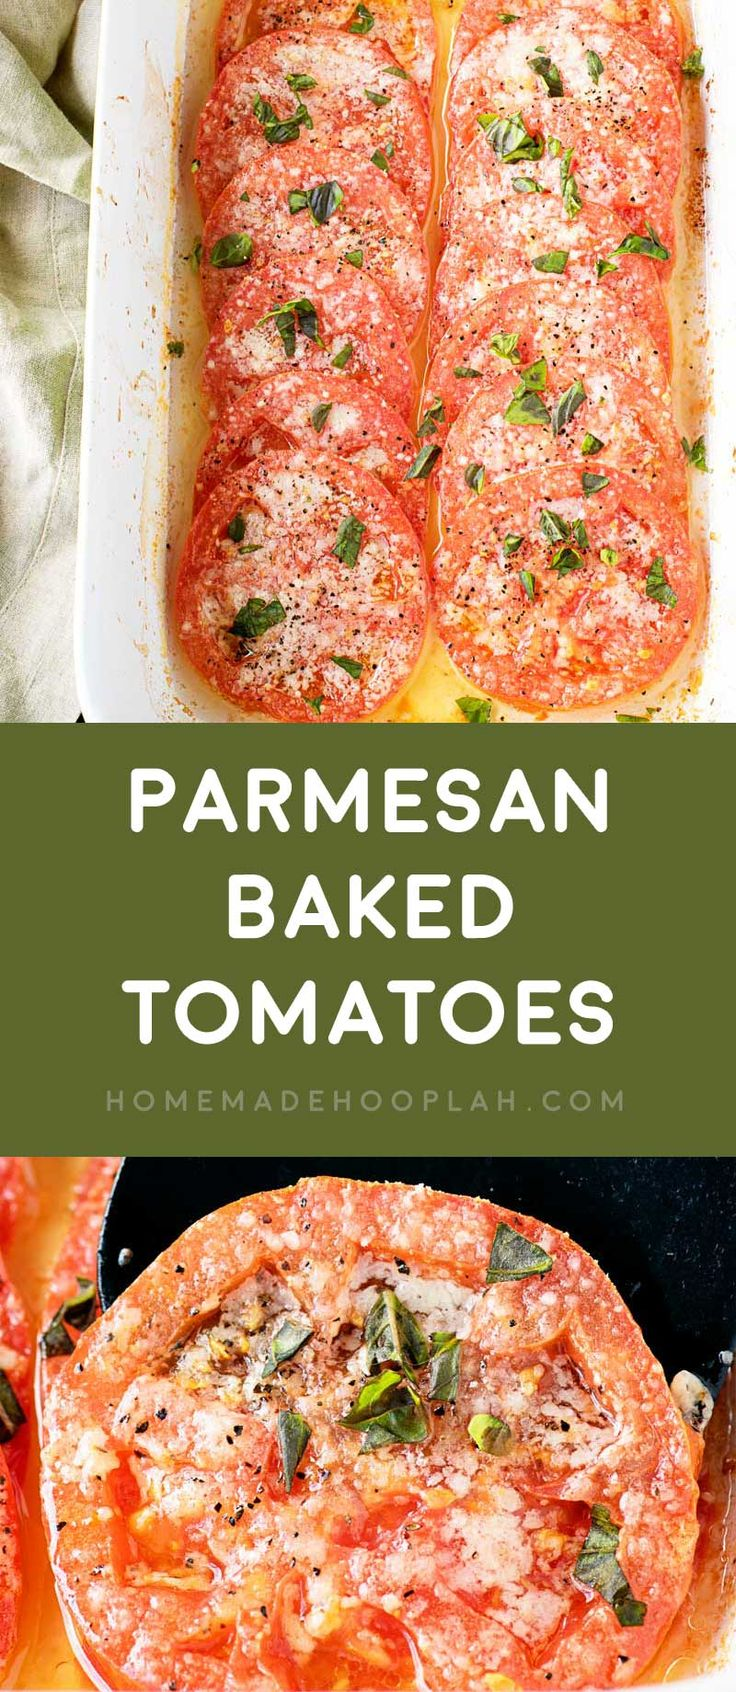 Parmesan Baked Tomatoes! If you're craving pizza but not the calories, this easy baked tomato dish is like a pizza without the dough. Bakes fast and only has 4 ingredients!   HomemadeHooplah.com